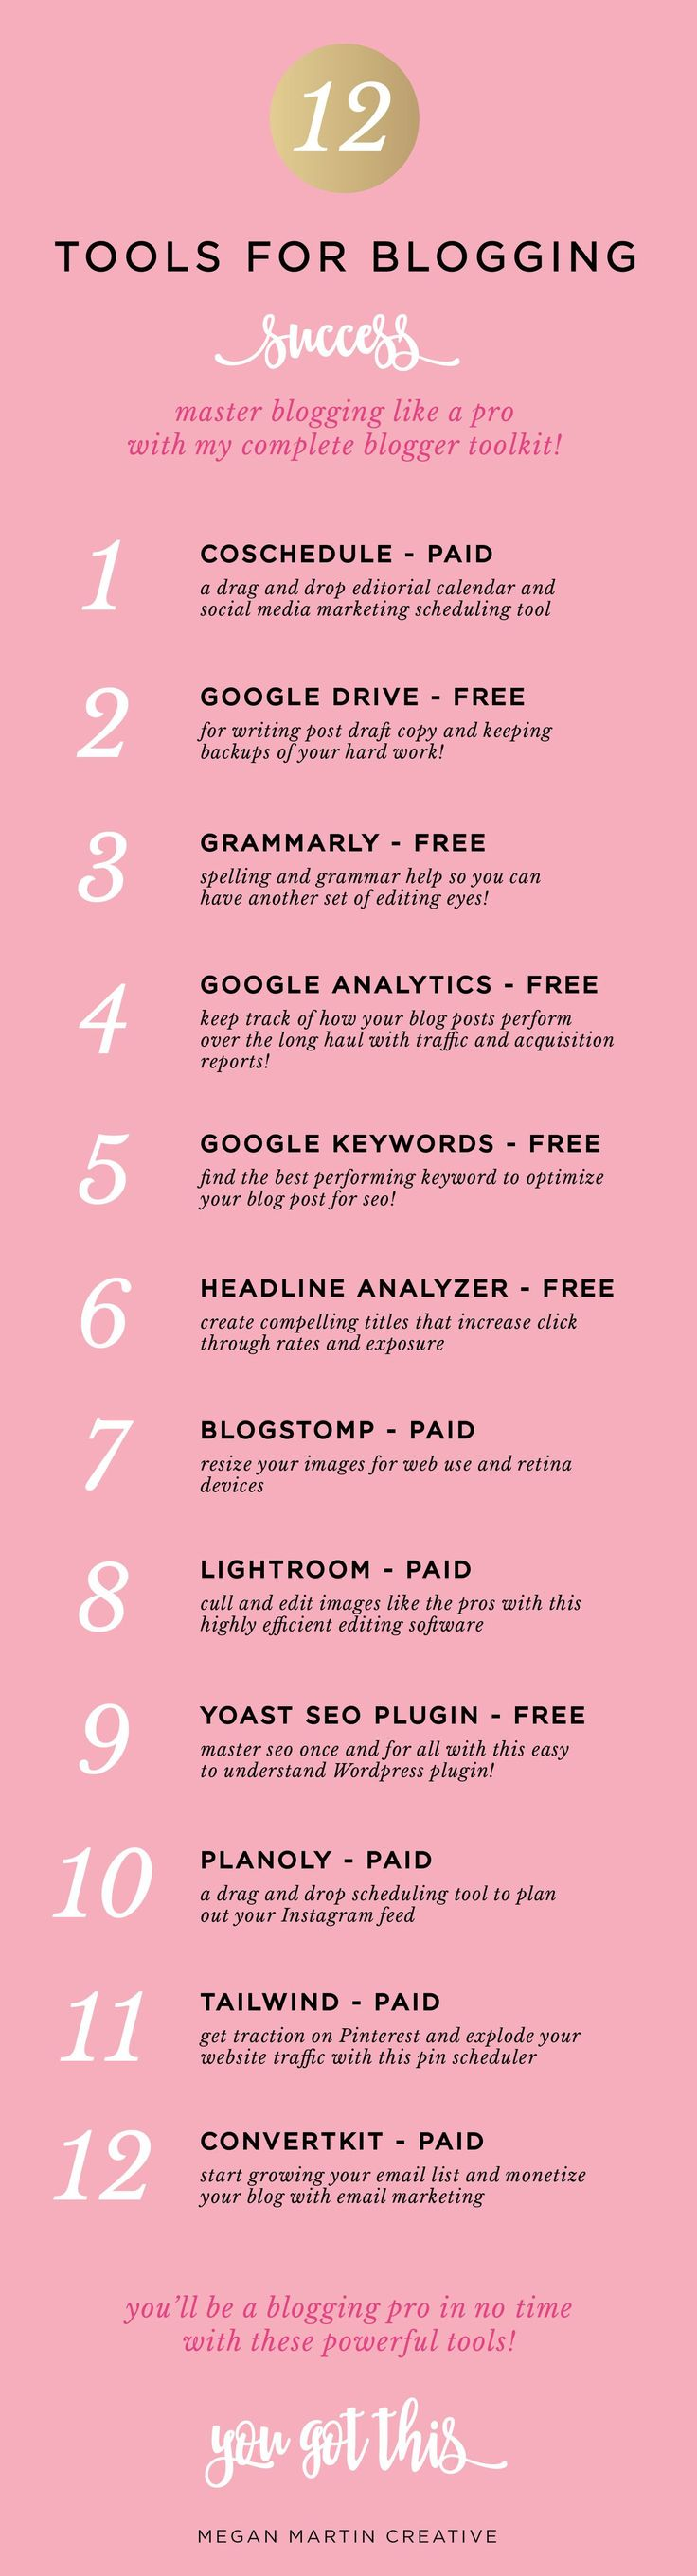 the best tools for blogging success you need now on Megan Martin Creative, blogger tips, #wordpress blog, seo tips, blogstomp, coschedule, yoast, lightroom, google keyword planner, google adwords for blogging, grammarly, writing blog posts, tips for bloggers